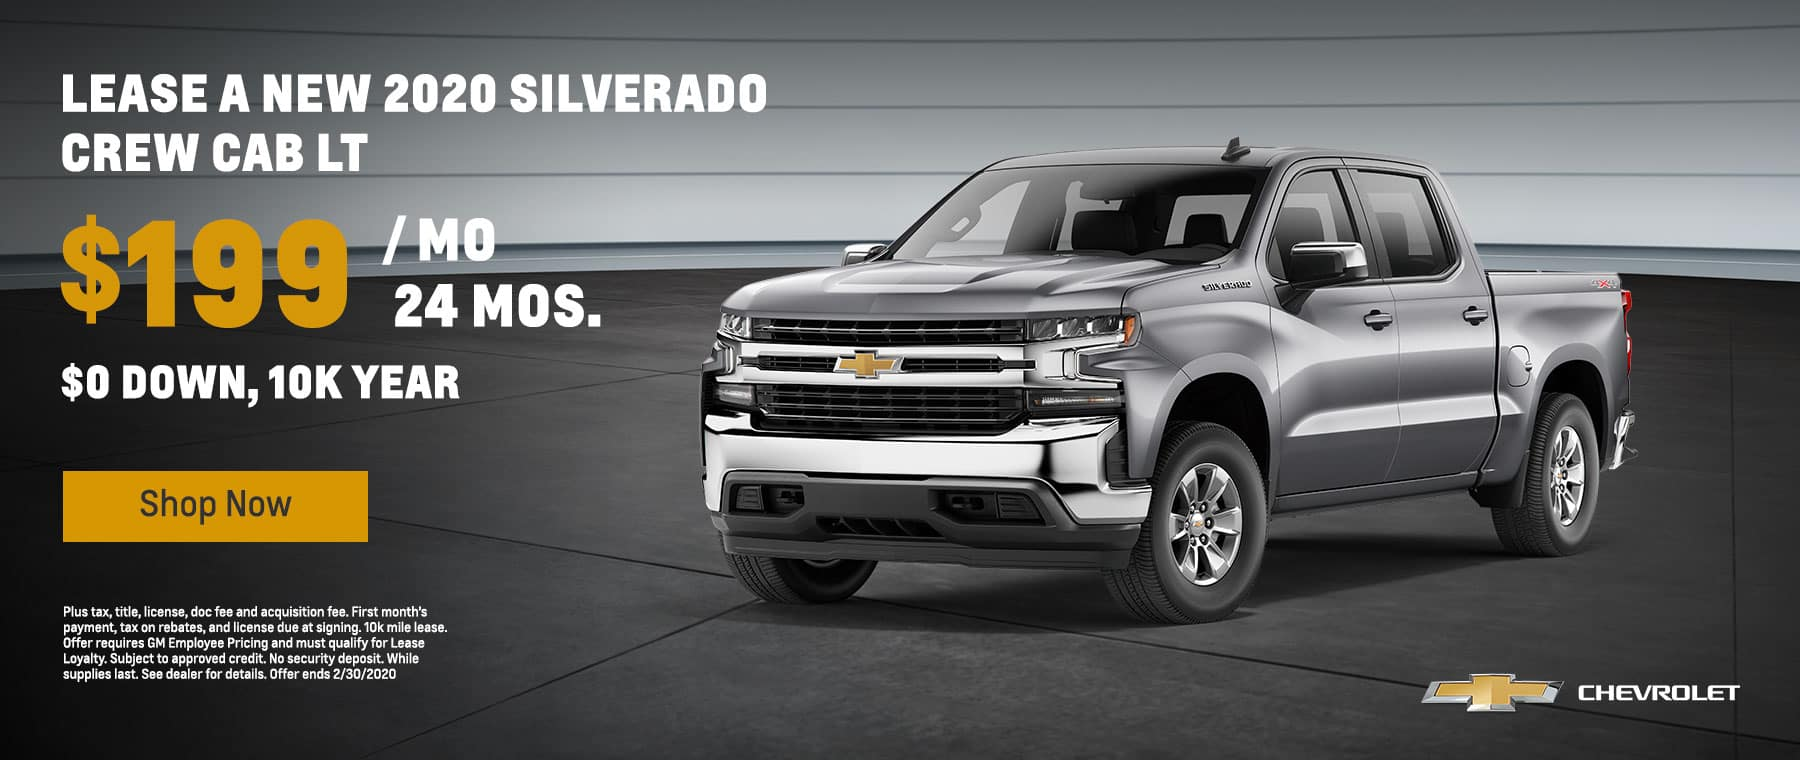 Silverado - $199 per month with $0 down for 24 months